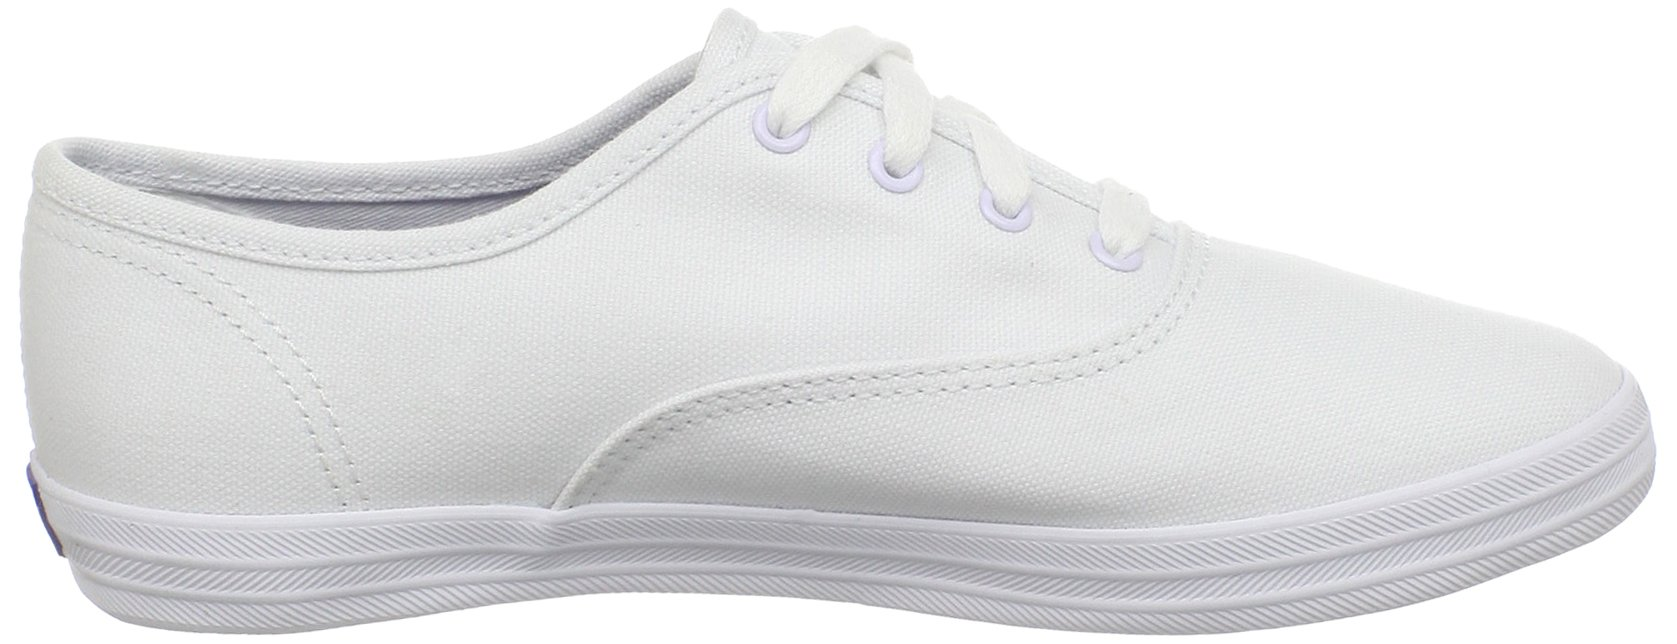 Keds girls Original Champion CVO Sneaker ,White Canvas,1 W US Little Kid by Keds (Image #7)